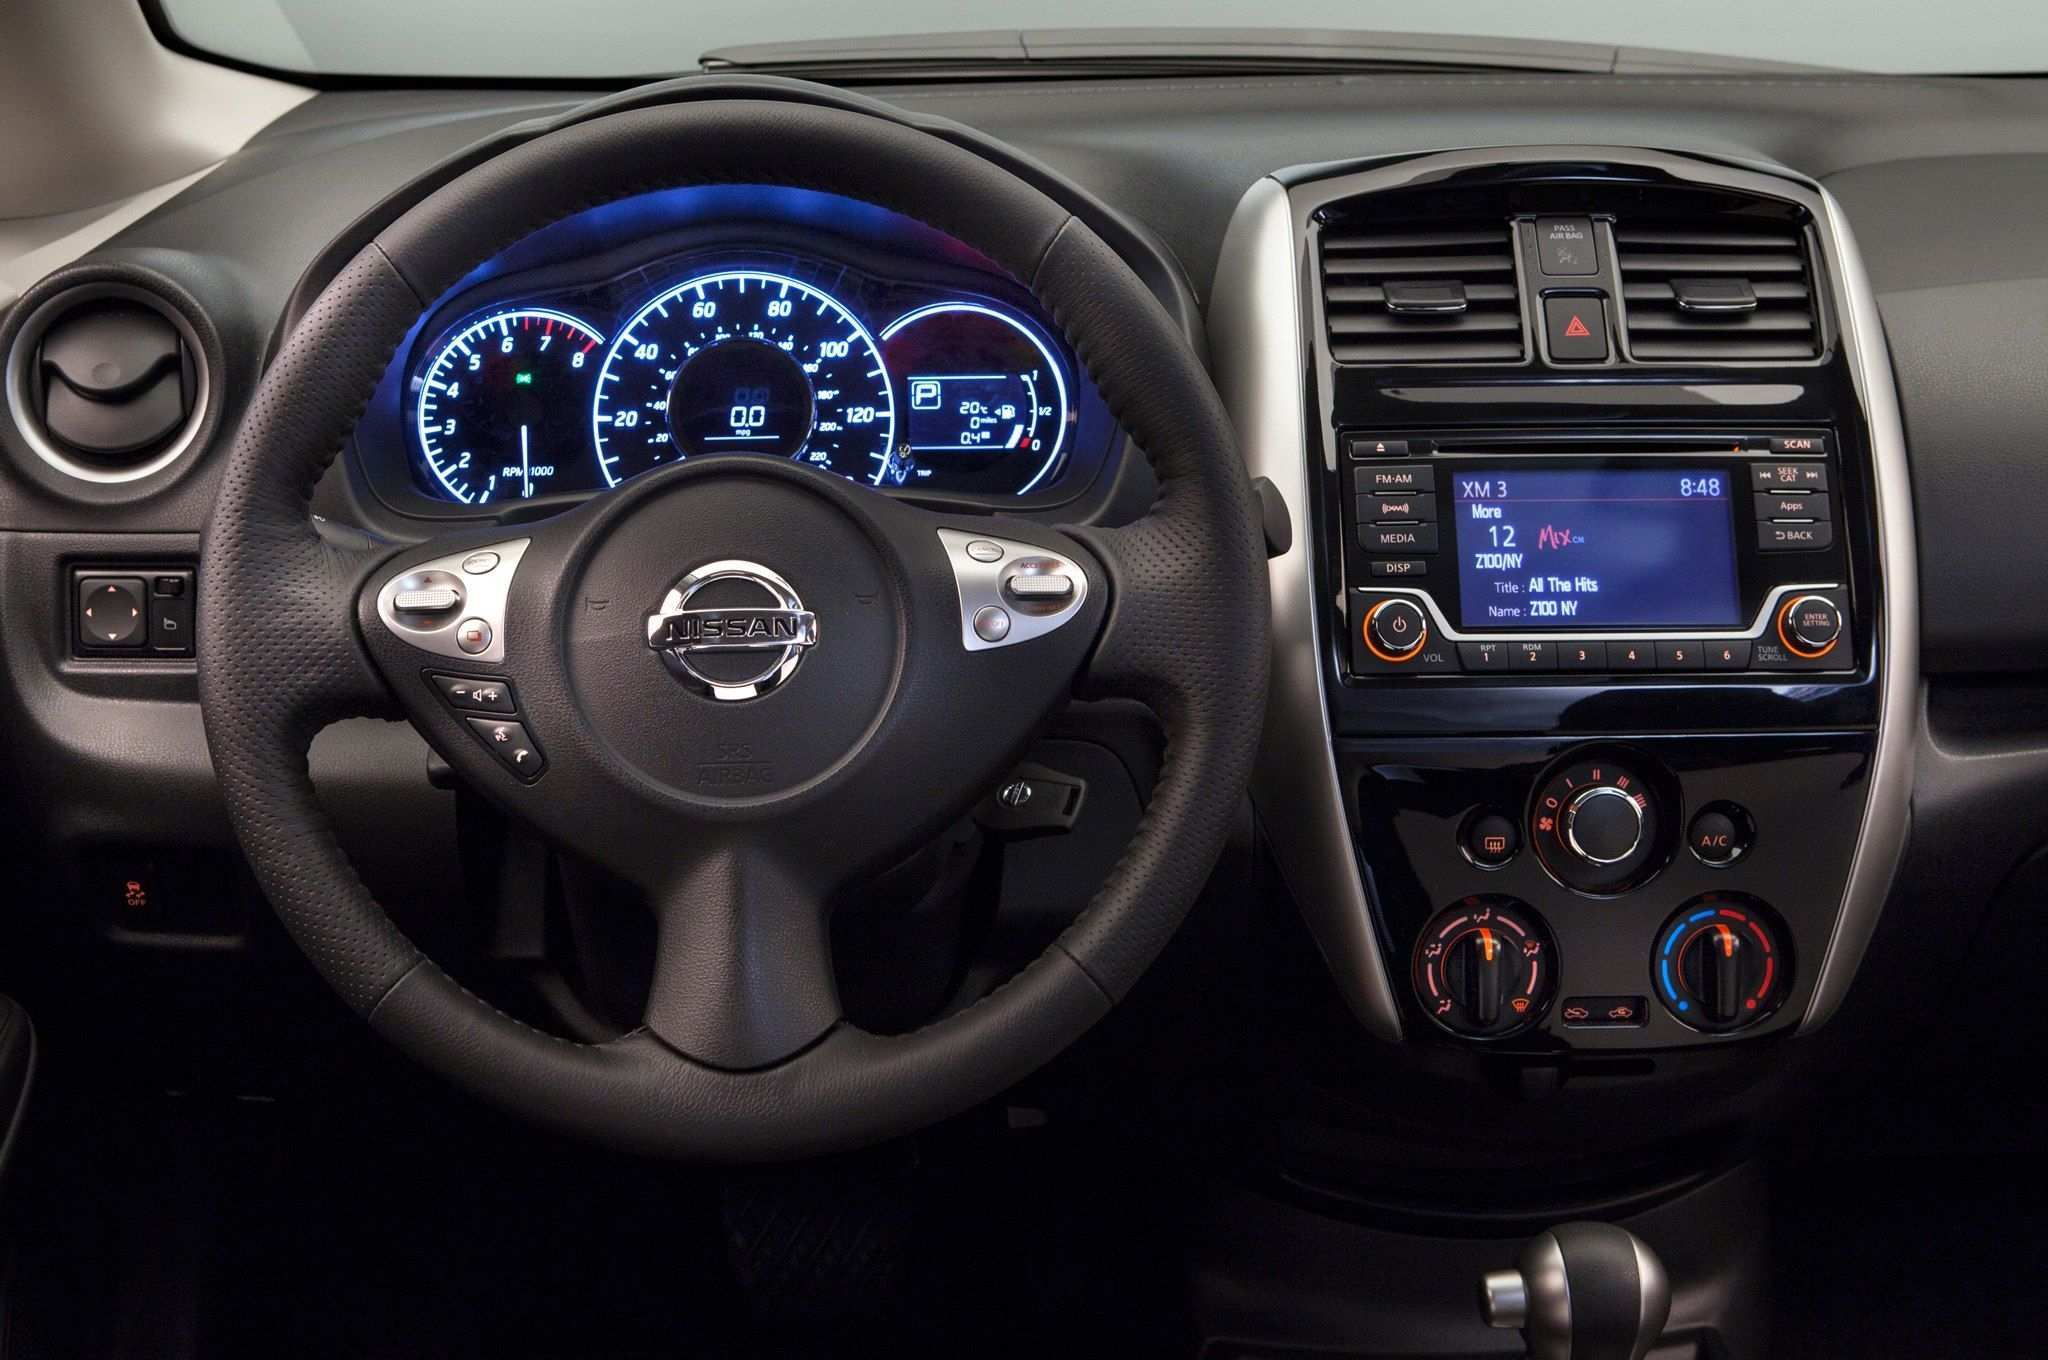 71 A Nissan Versa 2019 Interior Performance And New Engine